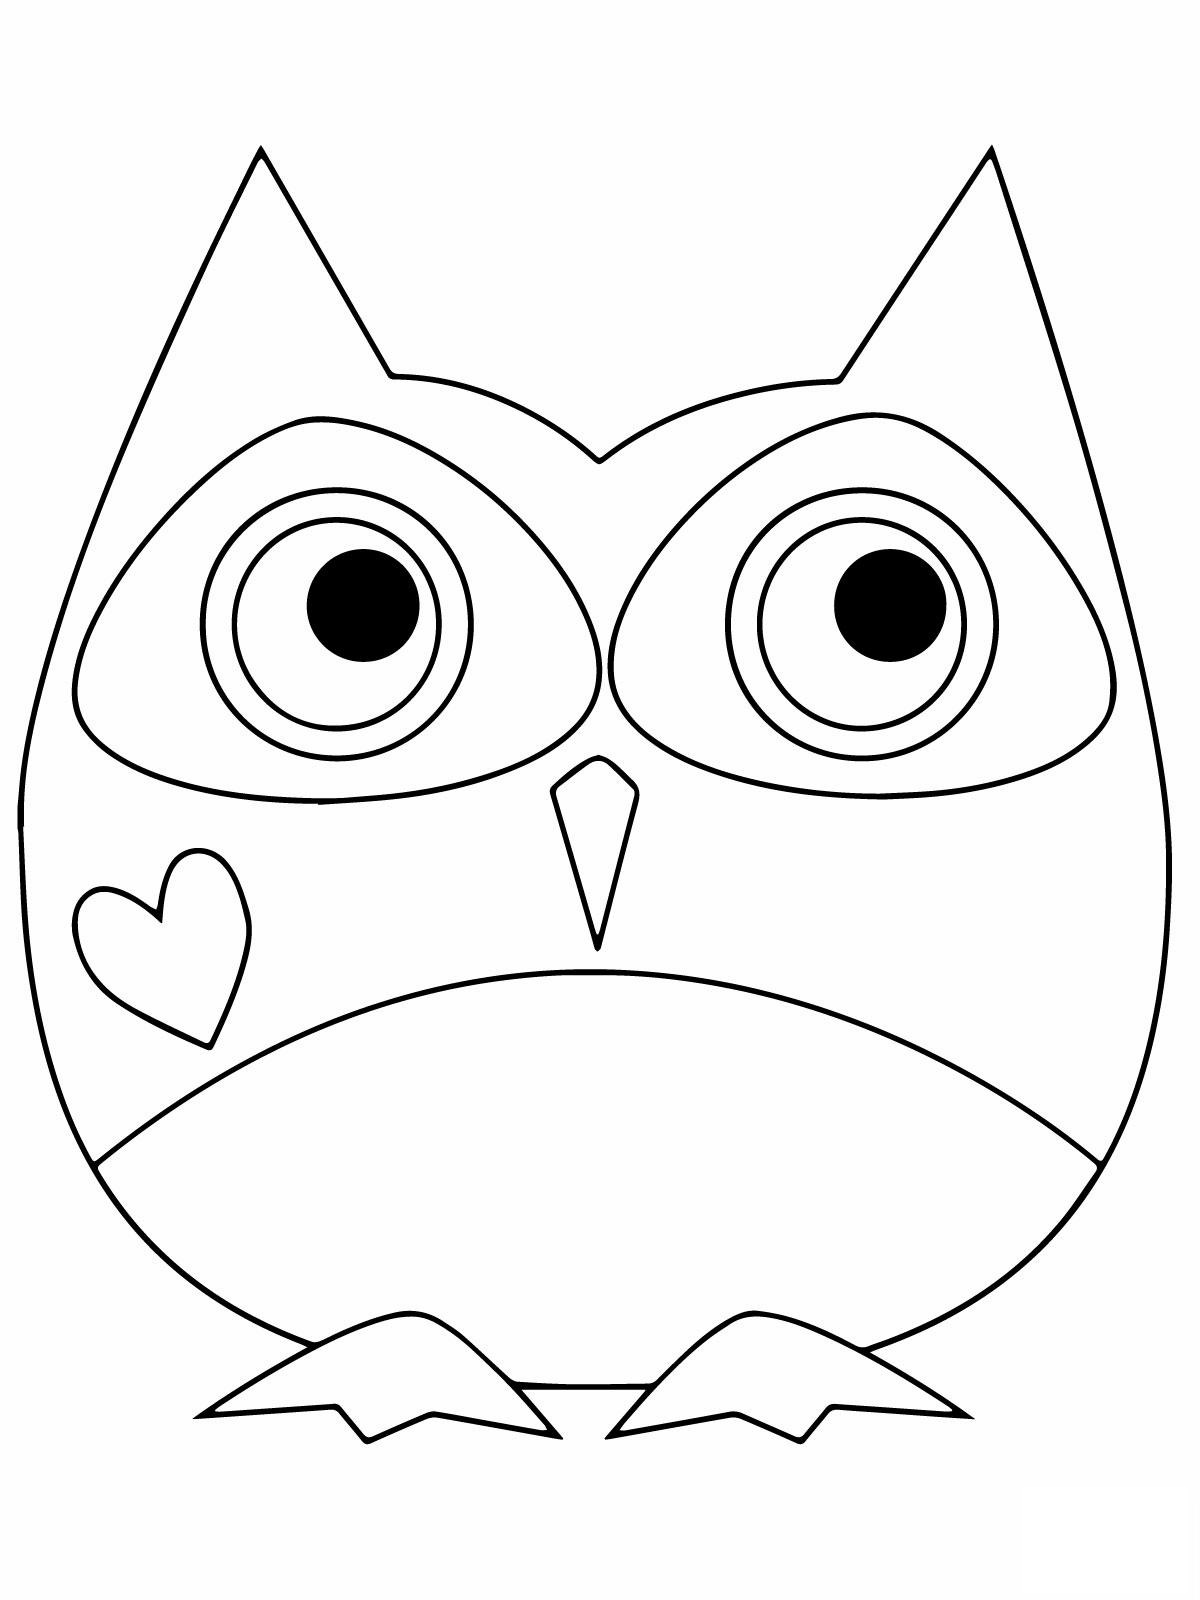 free printable coloring pages of owls owl eye coloring page owl eye coloring pagejpg color coloring printable of owls pages free